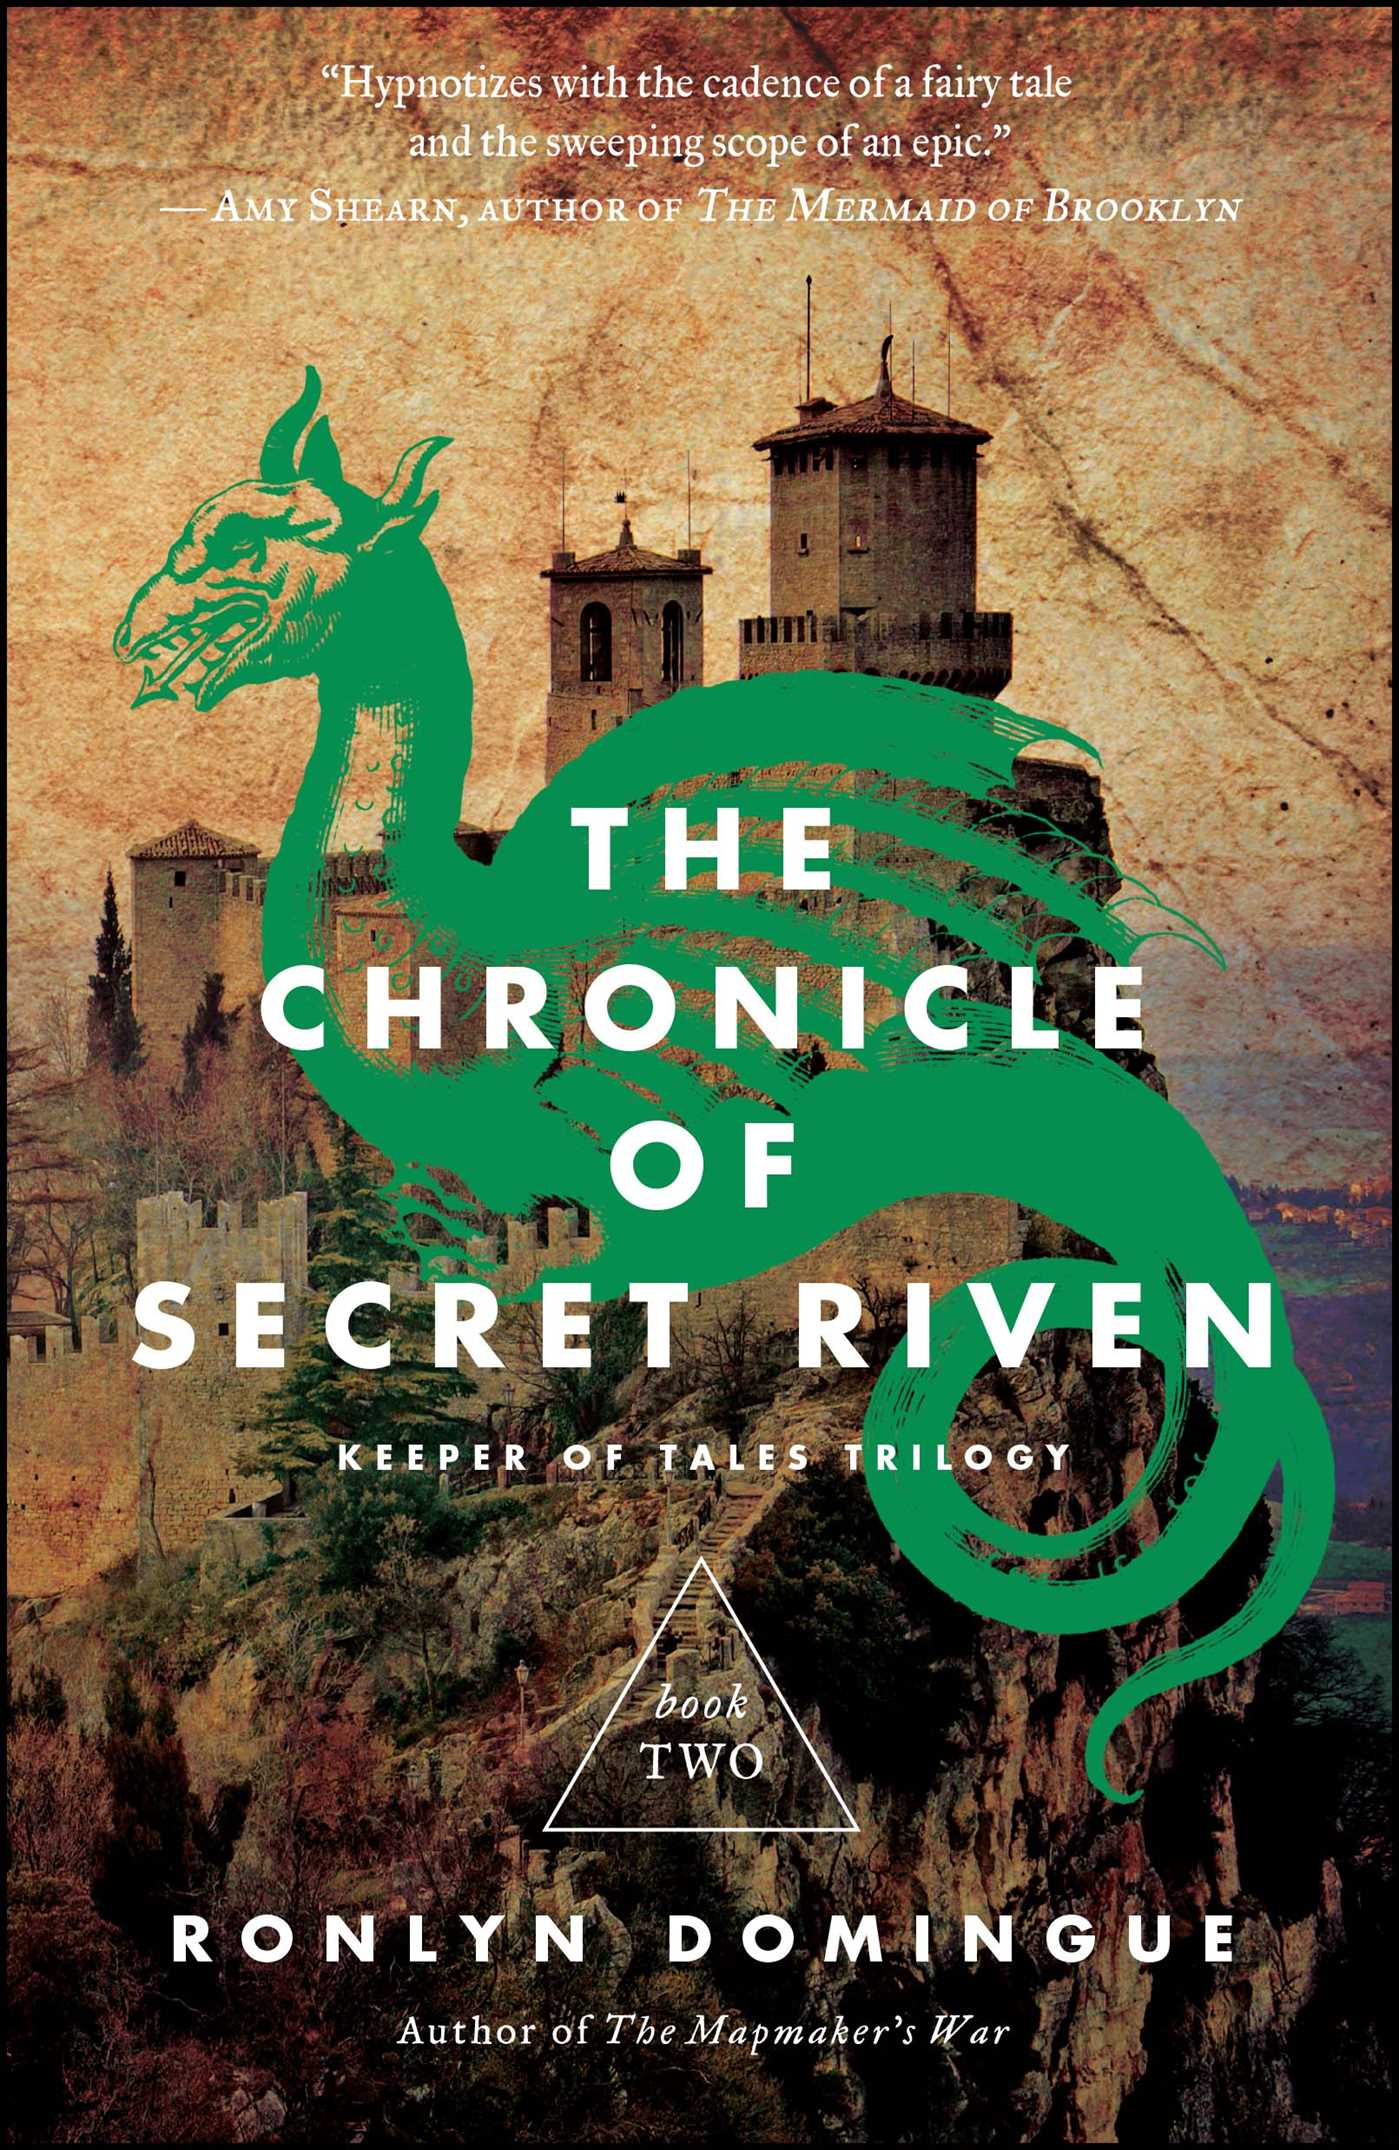 The-chronicle-of-secret-riven-9781451688931_hr